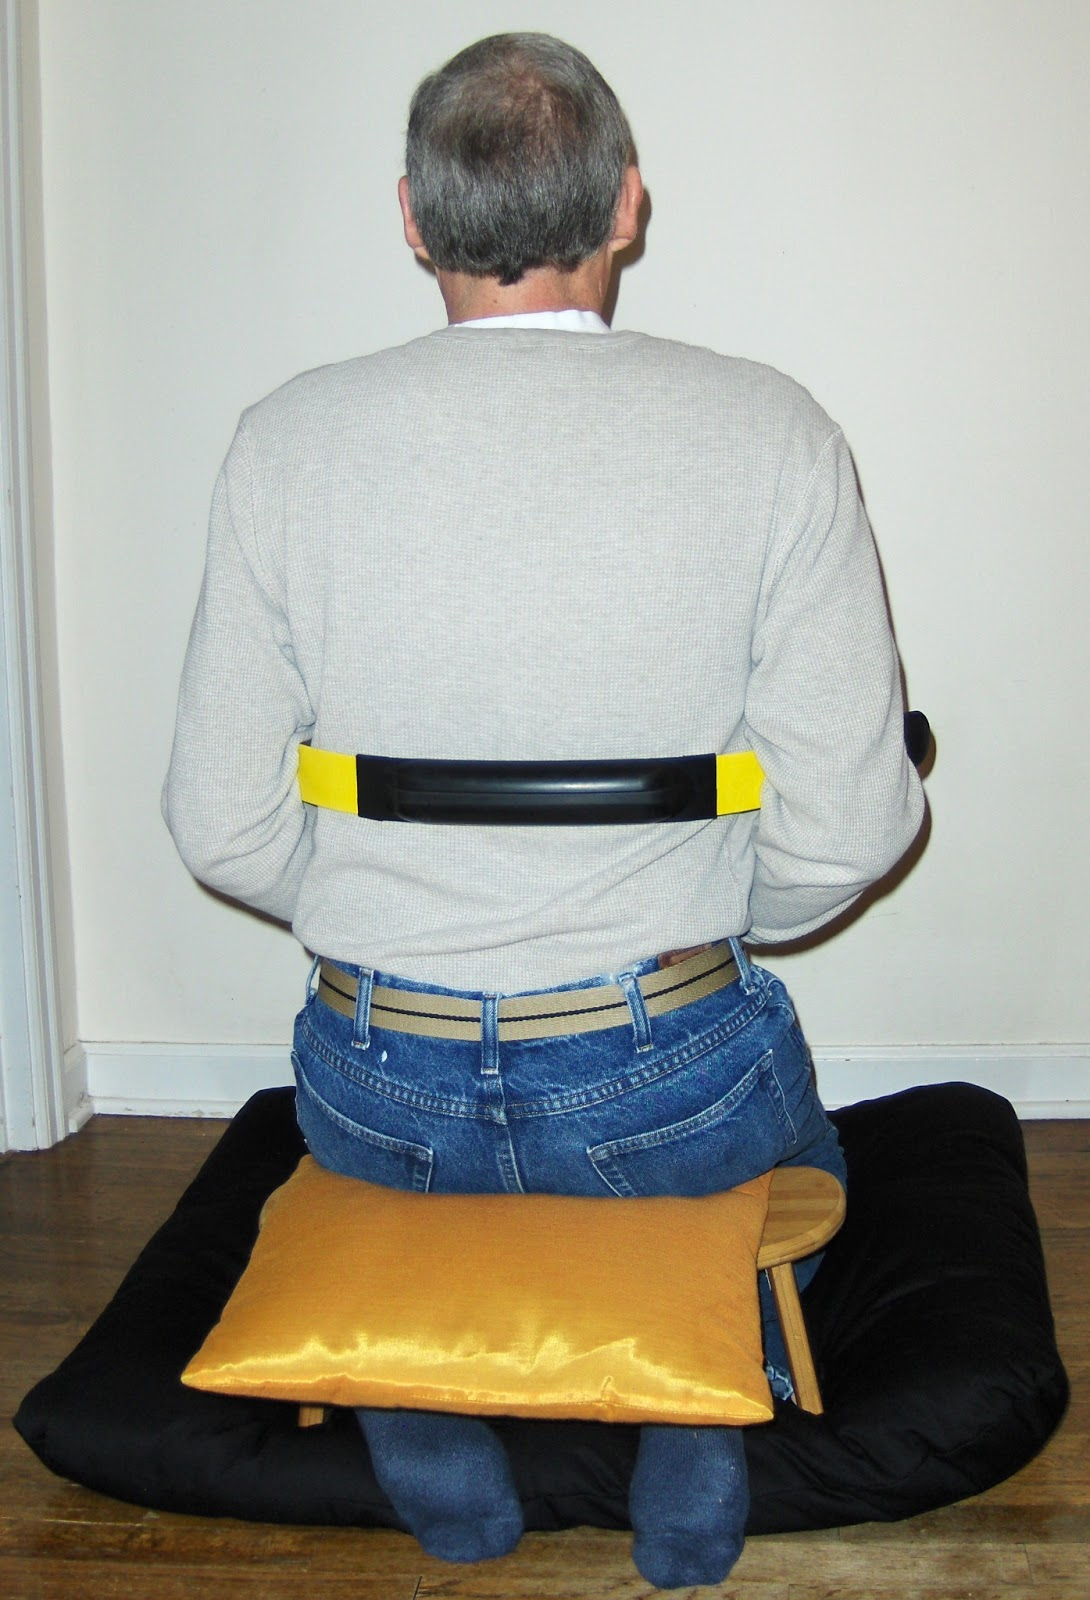 Back view of sitting with the BodyBlade